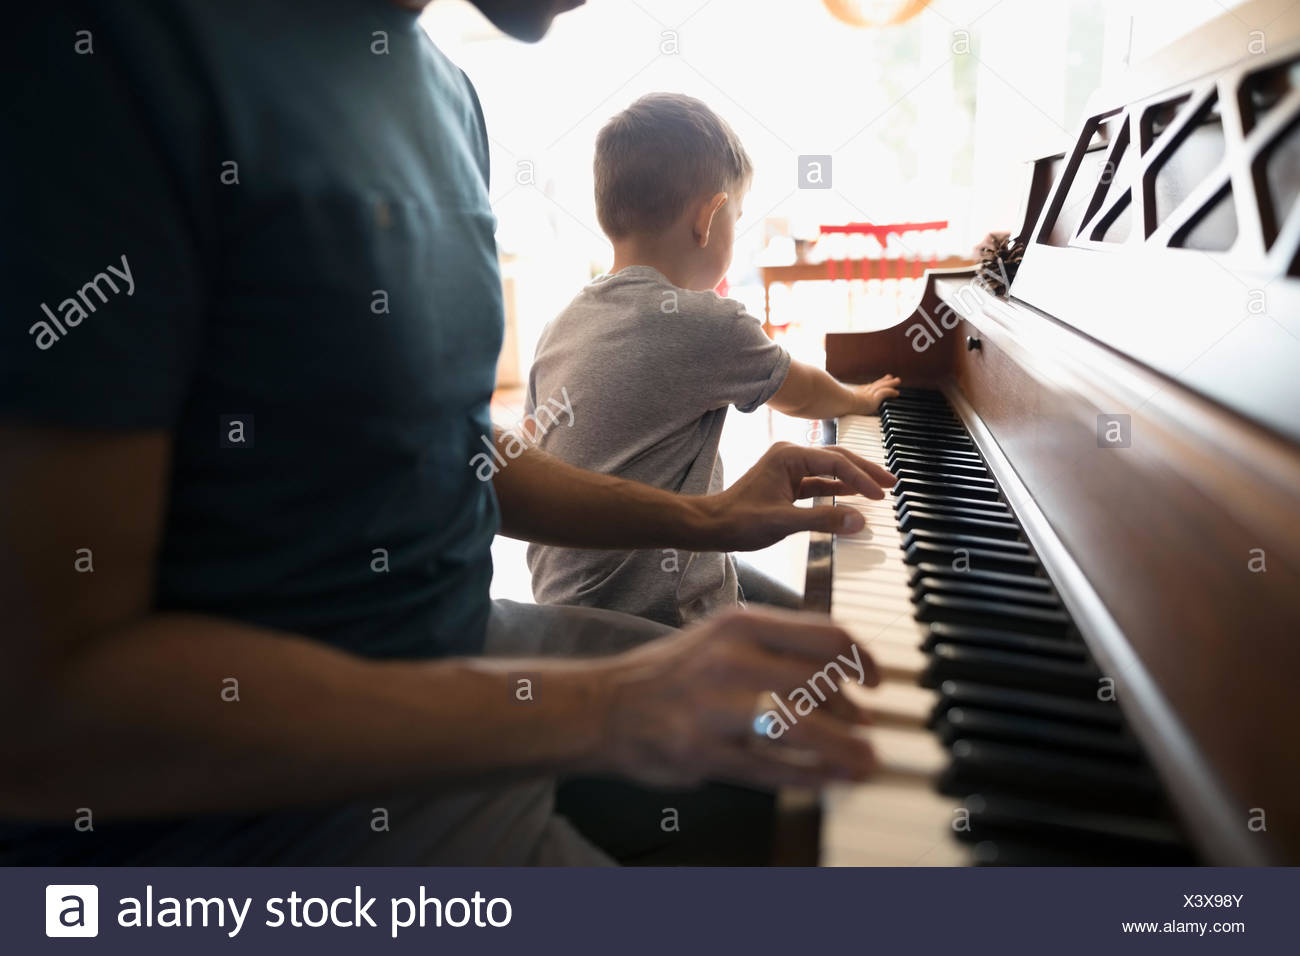 how to teach a toddler to play piano